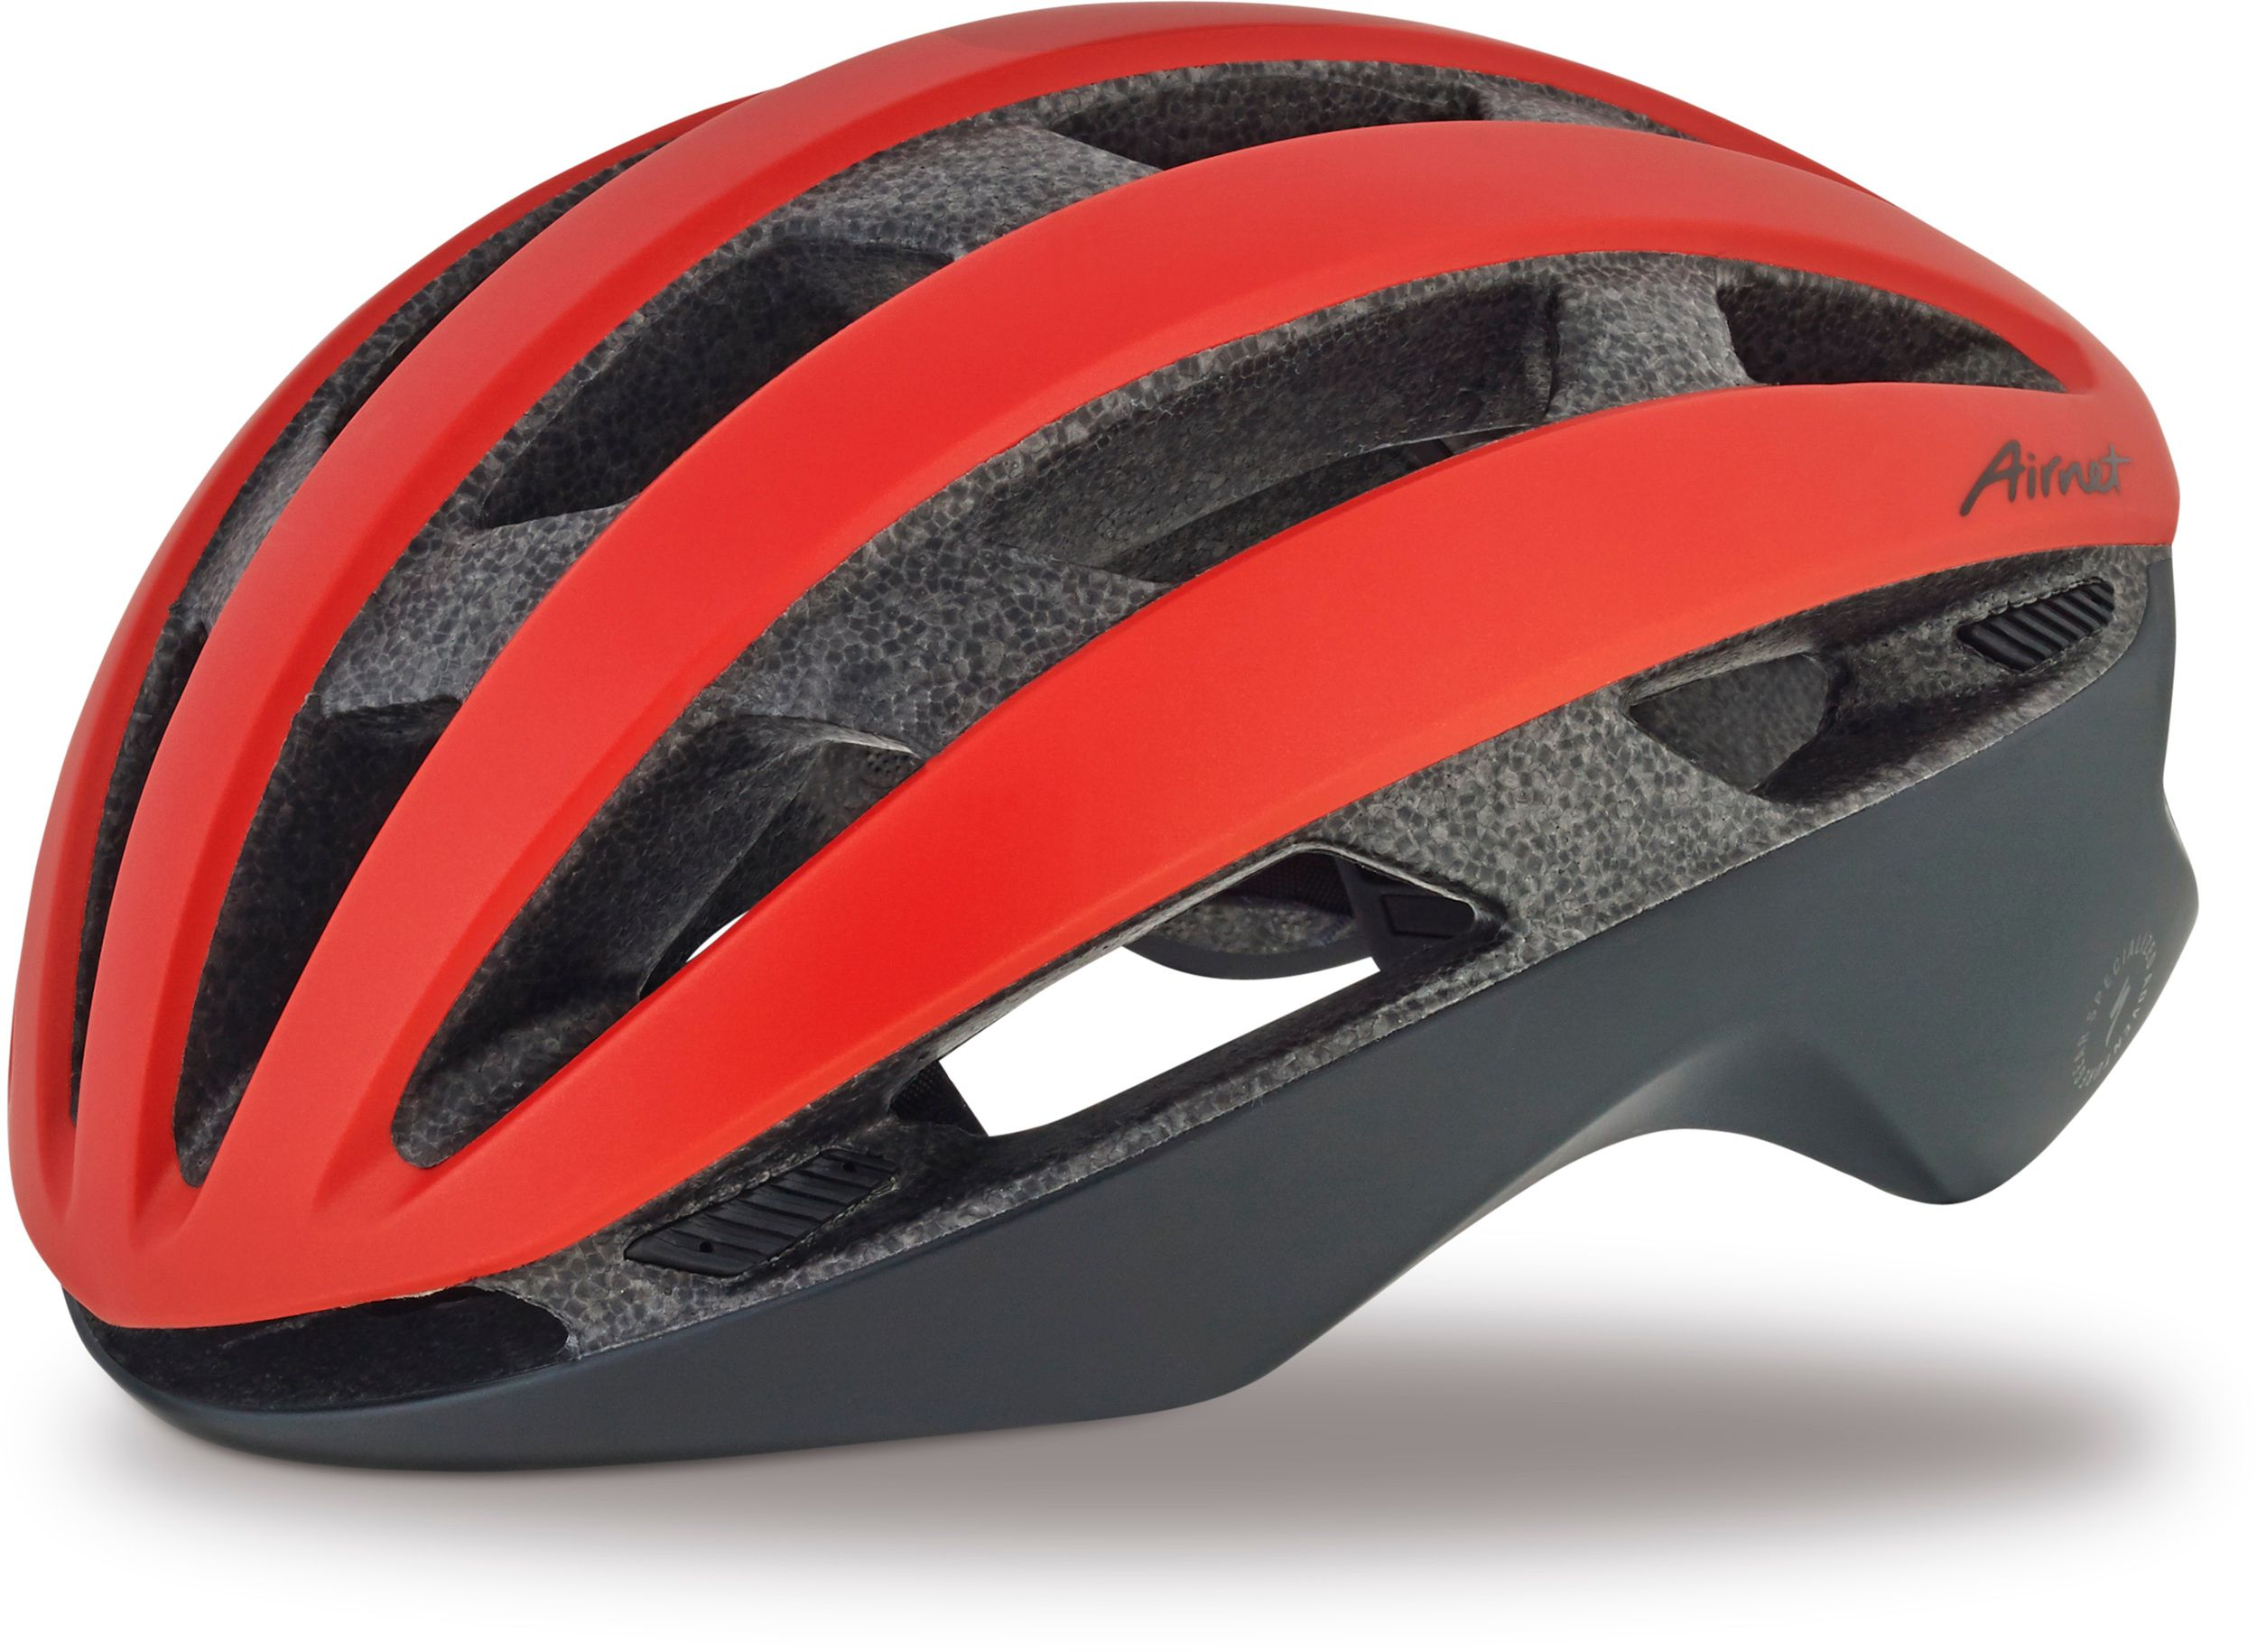 Specialized Airnet Red Cycling Helmet | Helmets